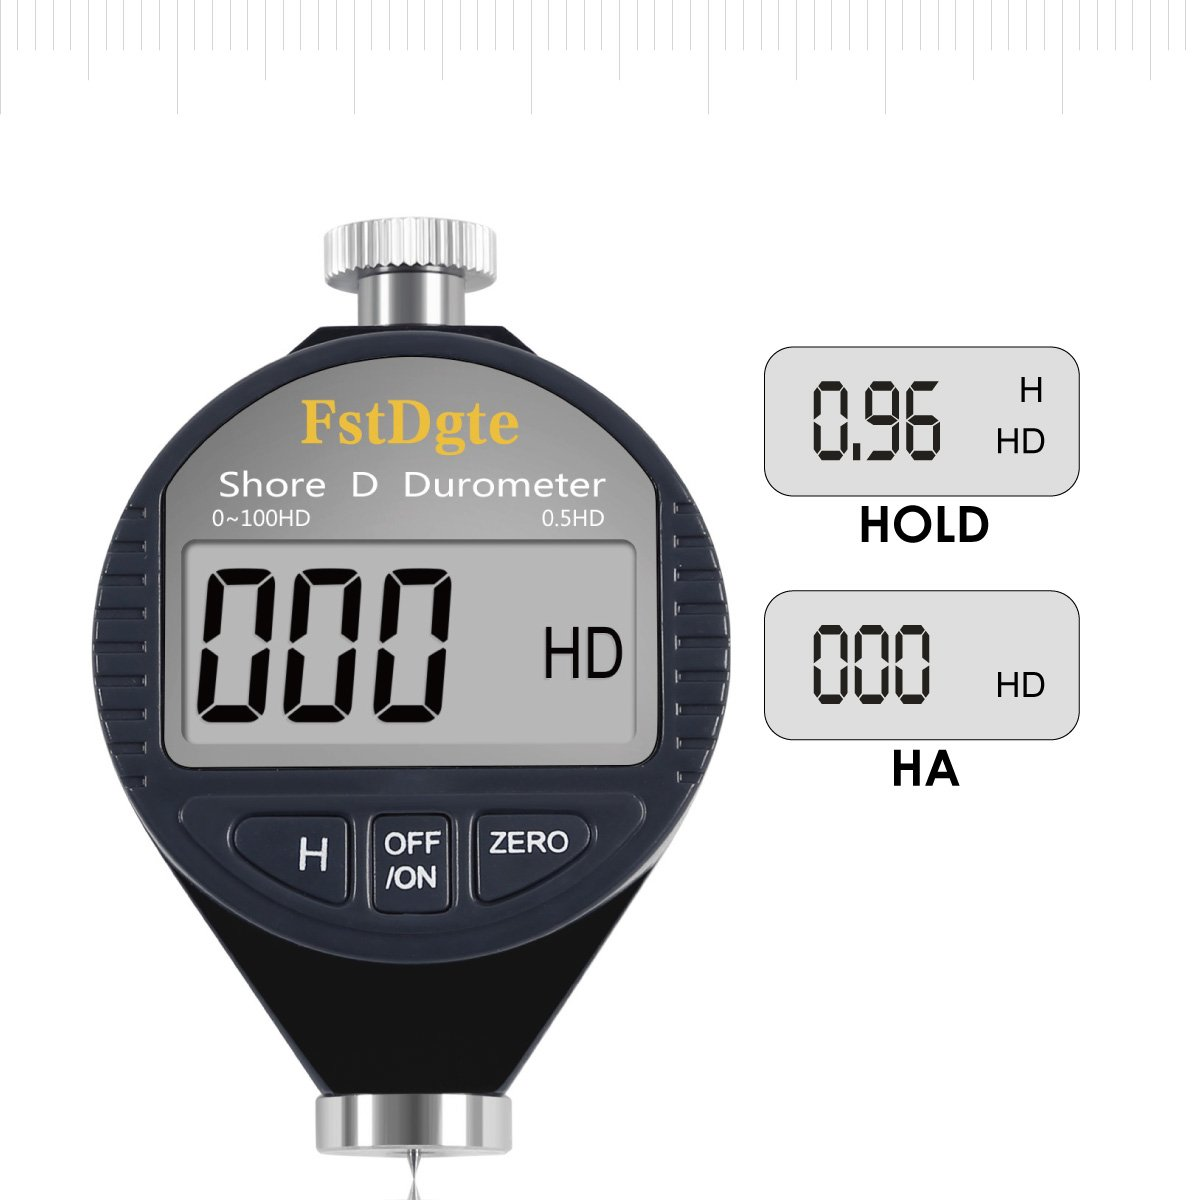 Digital Shore Durometer Hardness Tester D,Range 0-100HD,Resolution 0.5HD,for Hard Rubber,Such As Thermoplastic Plastics,Bowling,Plastic Floor Etc,with Data Hold//Zero Button,LCD Display,Lifetime Warranty